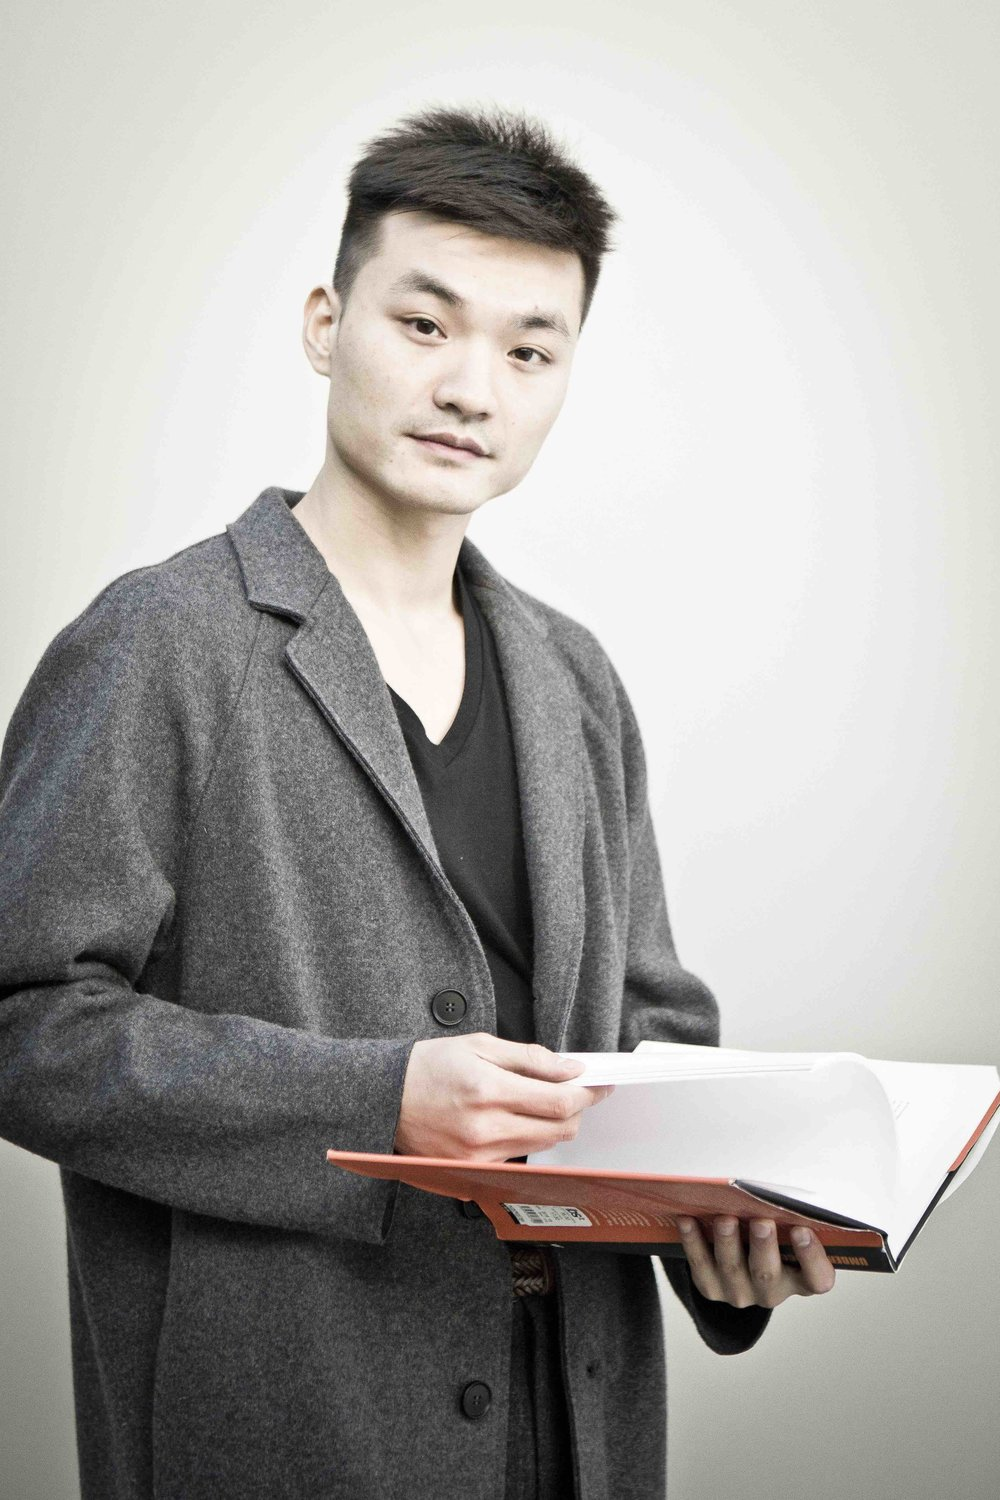 HIS ROLE IN TIAC:  Zhou first joined TIAC in 2016. He is the project coordinator and PR of the Turandot Art Studio, and the assistant of the chief executive officer.  GET TO KNOW HIM:  Zhou was born in China in 1989 in a small city called Pingxiang. Zhou loves dogs, playing computer games and going to the gym. Before he came to Italy, he studied landscape design at Huangzhong University of science and technology. After he graduated, he worked at China Urban Construction Design & Research Institute for 5 years in Beijing and Shenzhen. However, while working there he realized that he needed more preparation. This urge for knowledge brought him to Italy to study architecture at Florence University.